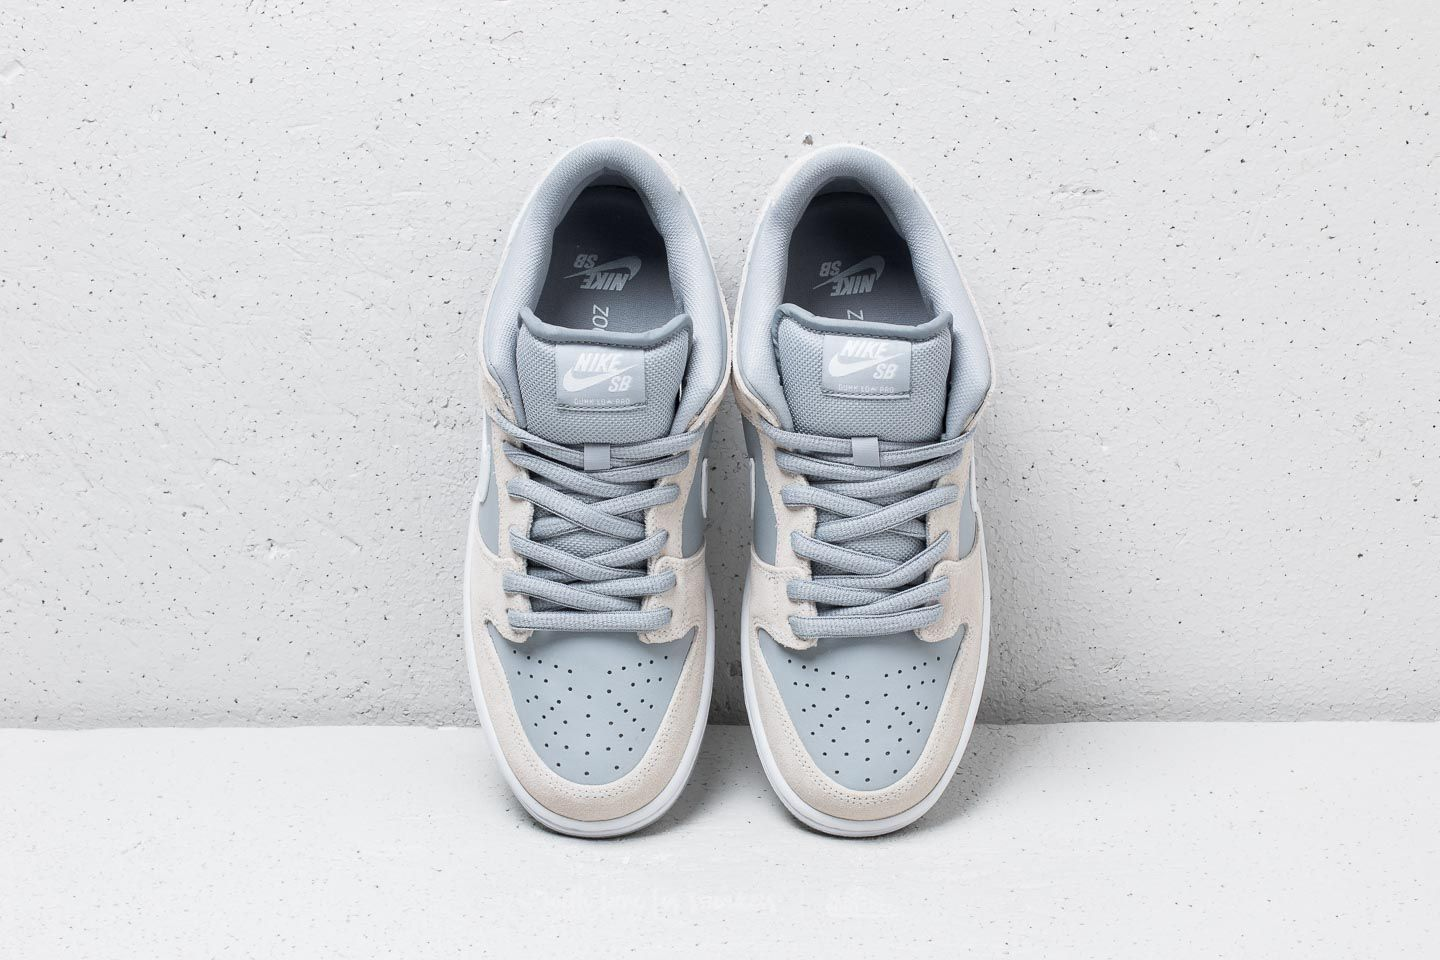 Nike SB Dunk Low TRD Shoes Summit White White Wolf